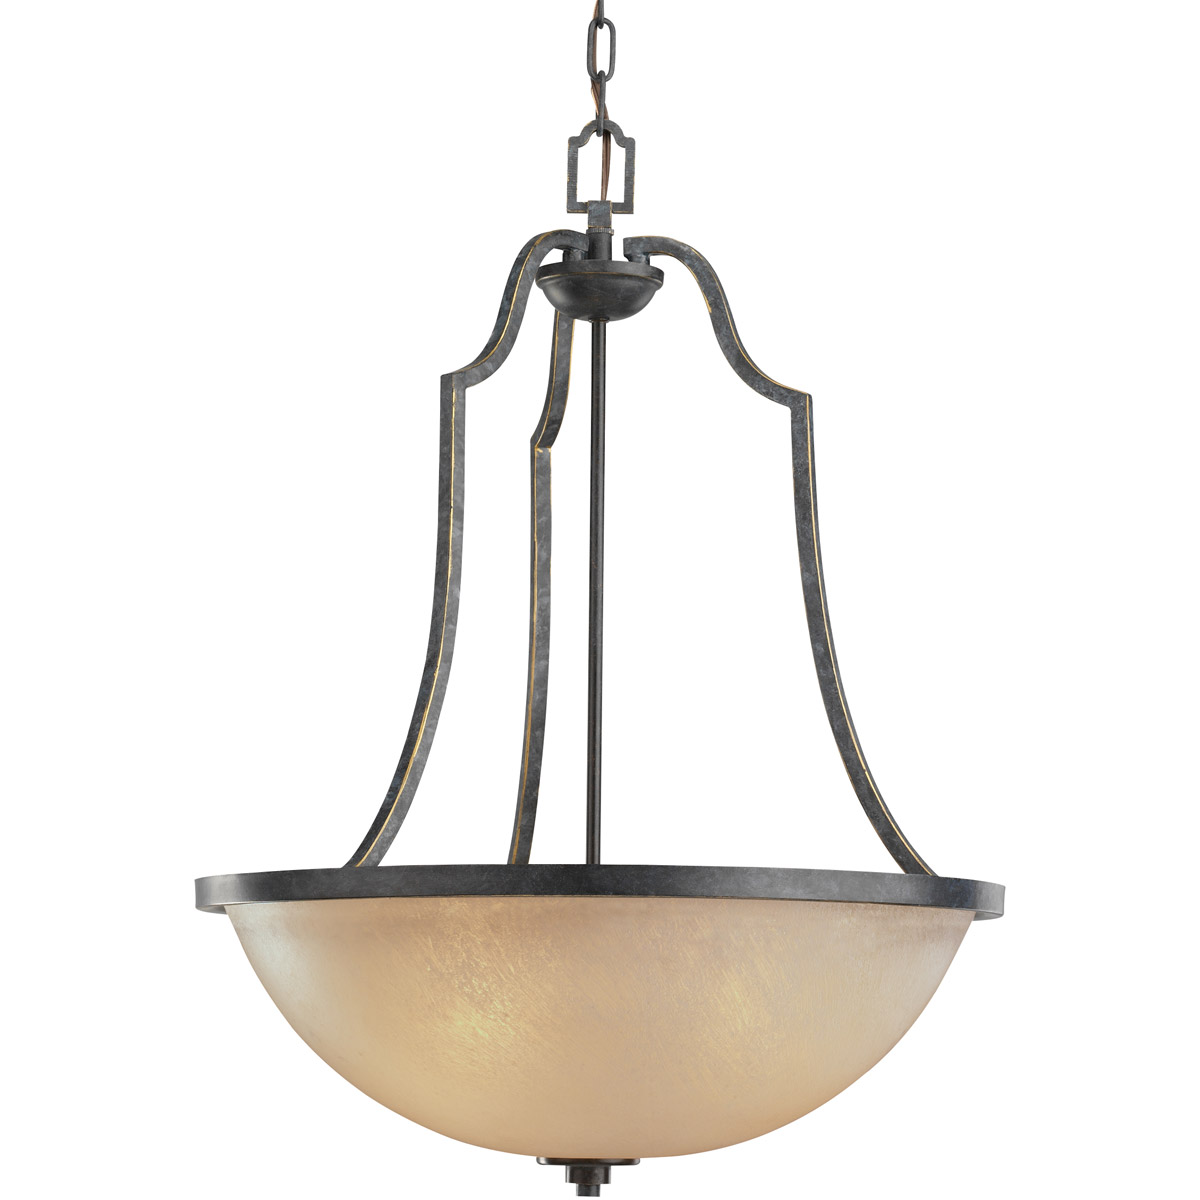 Sea Gull Lighting Roslyn 3 Light Chandelier in Flemish Bronze 65521-845 photo